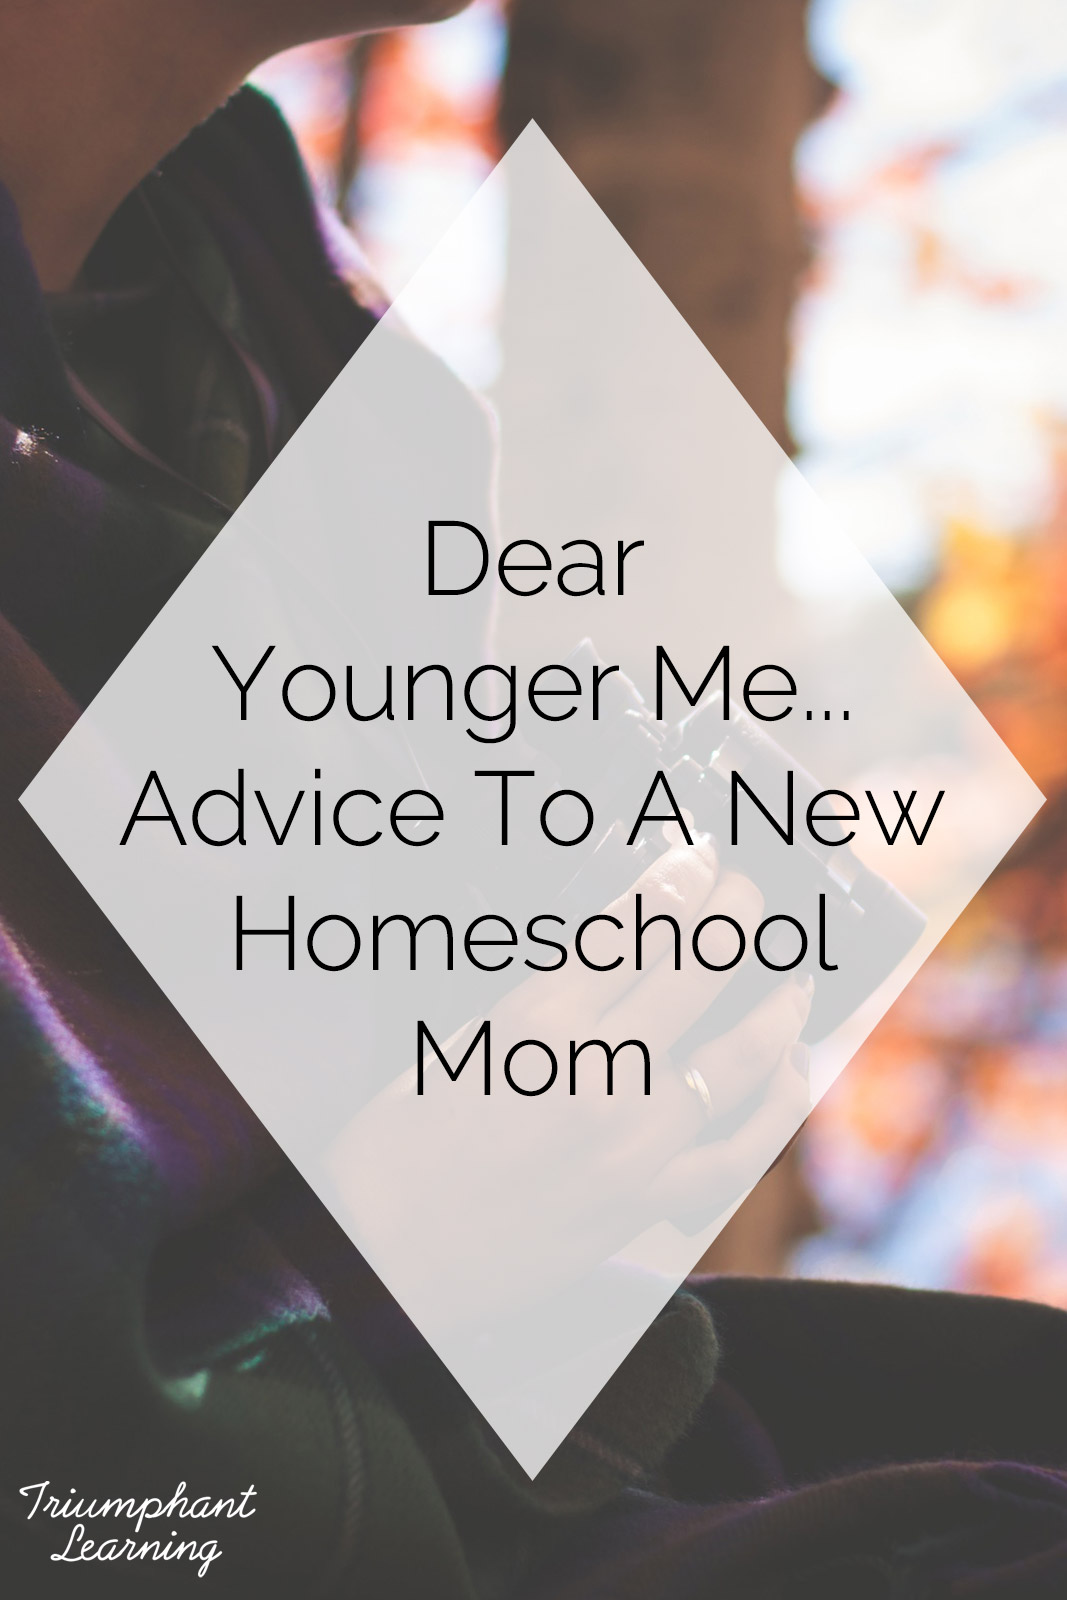 If only I had known... When we first began homeschooling, there was a lot I didn't know. Here are a few of the things I wish someone would have told me our first year homeschooling.